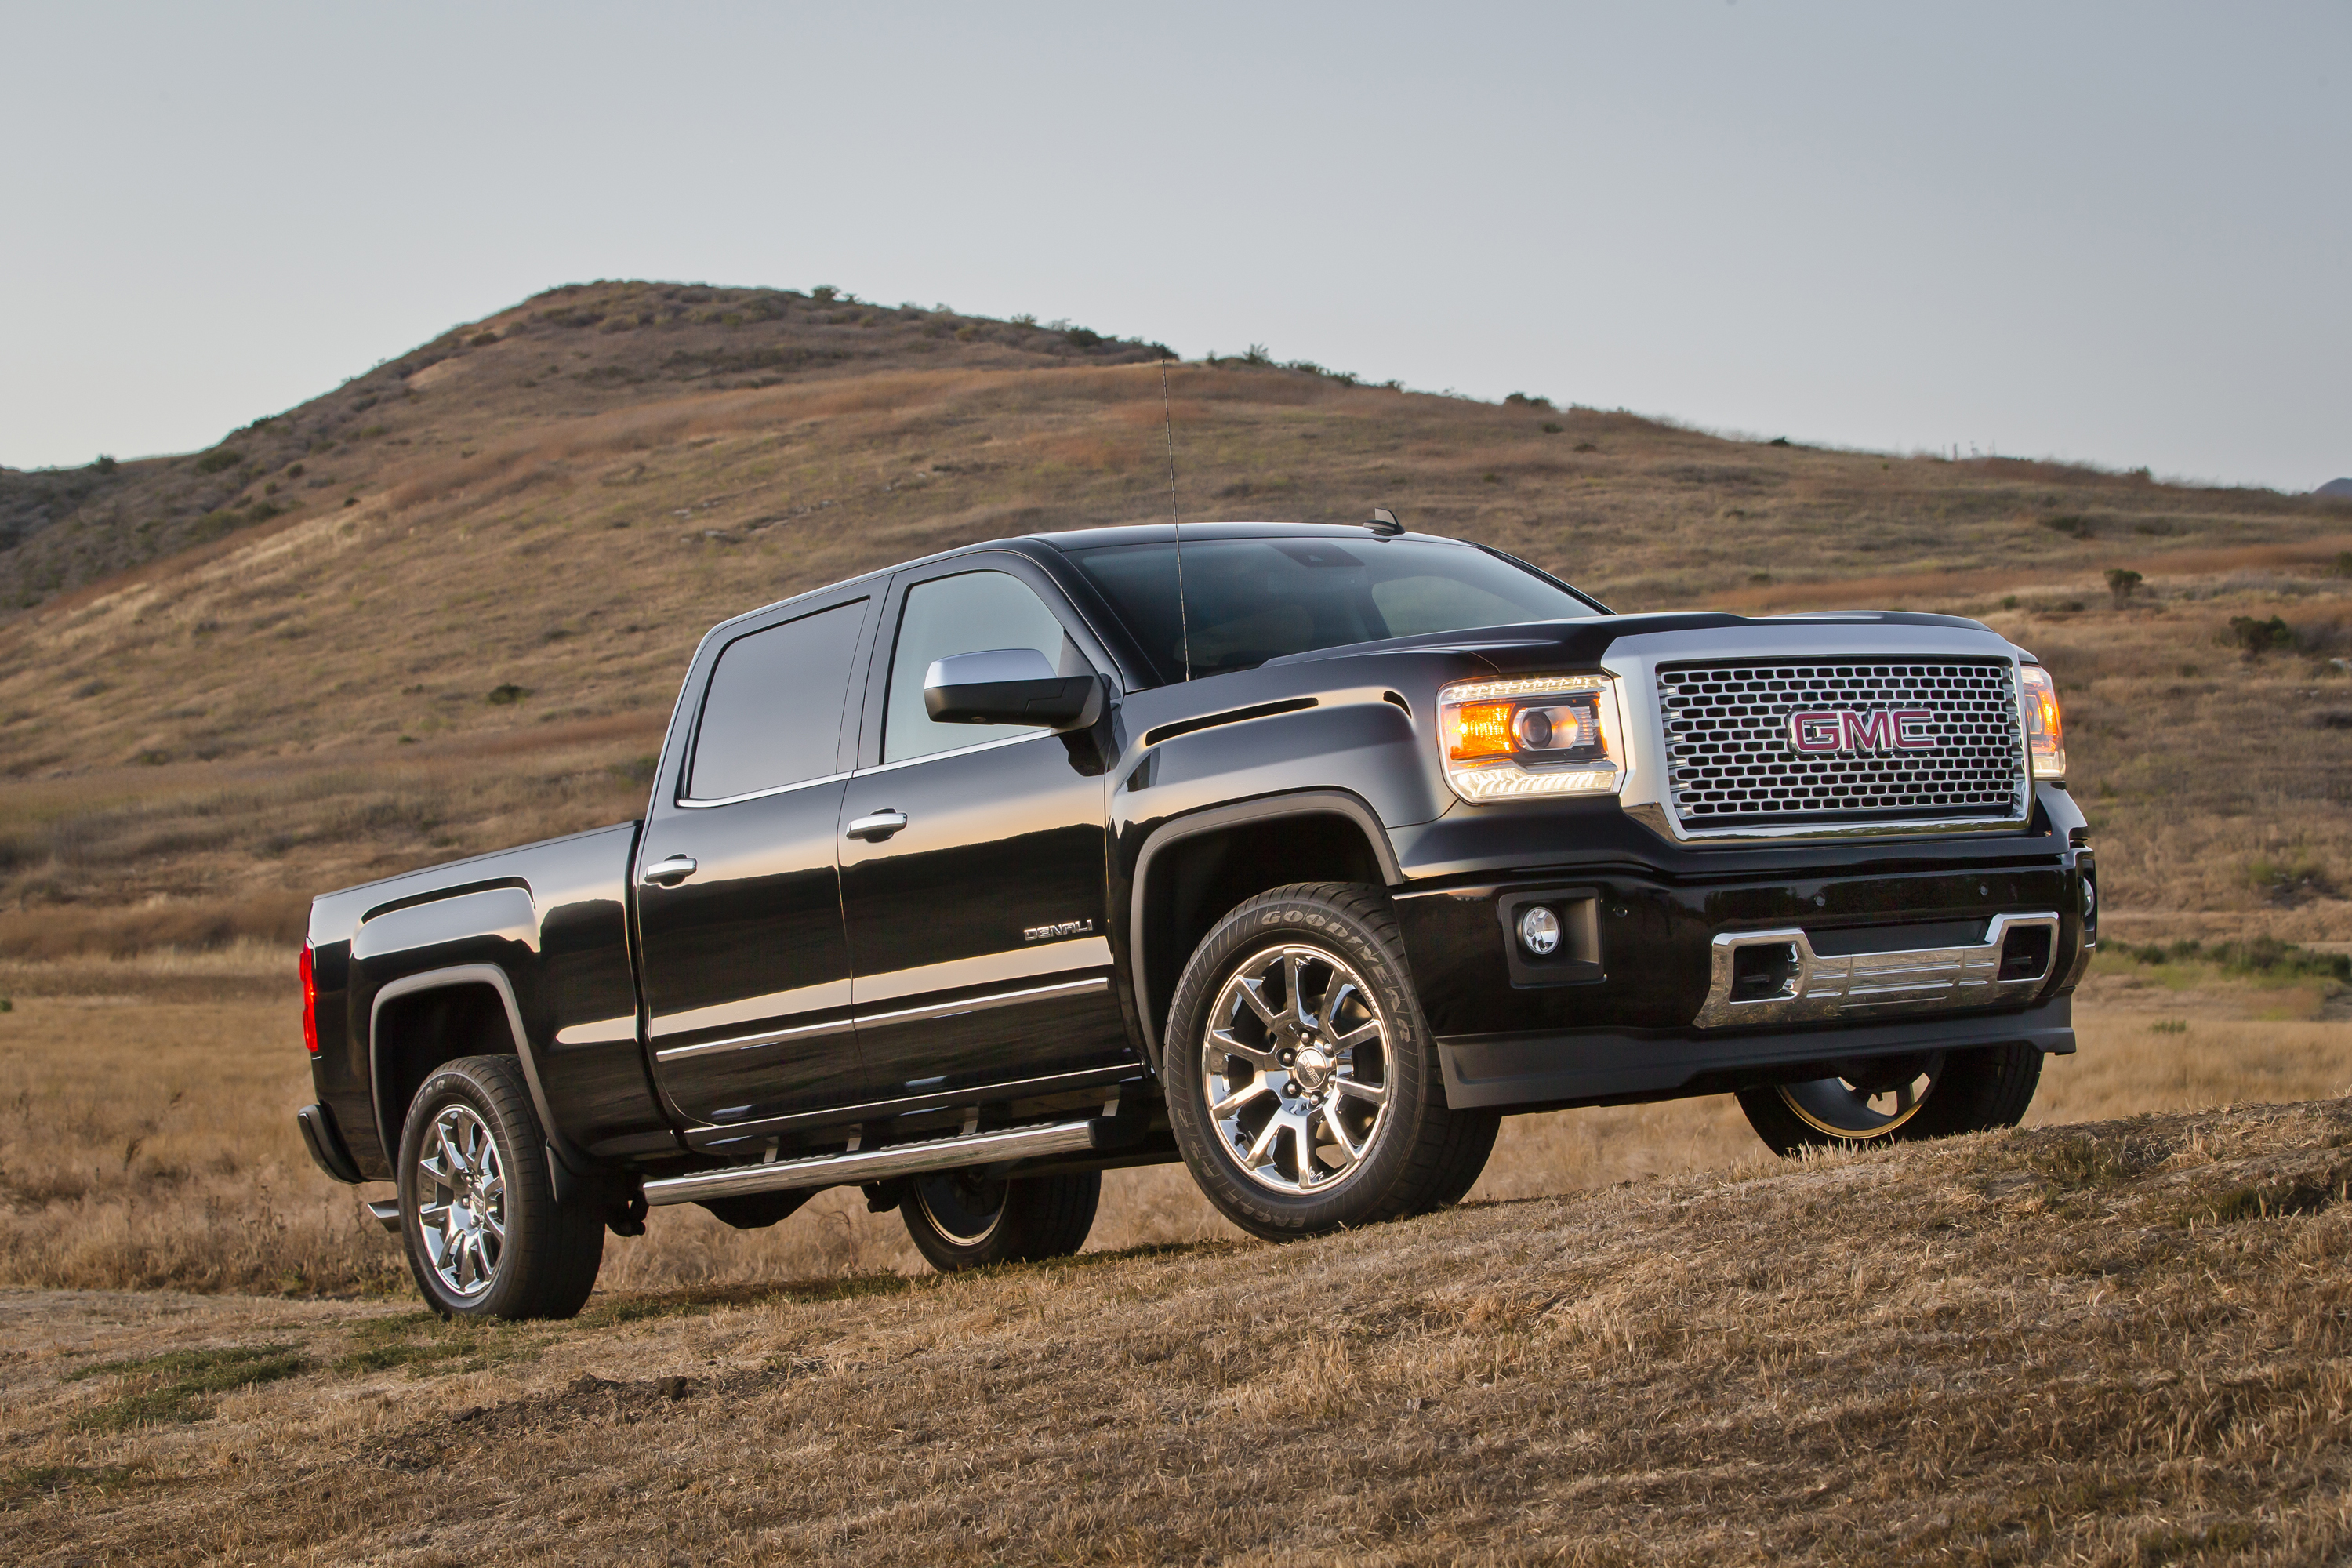 pairs denali us gmc studio threequarter sierra vehicles pages tech en may front media detail capability and luxury content news high